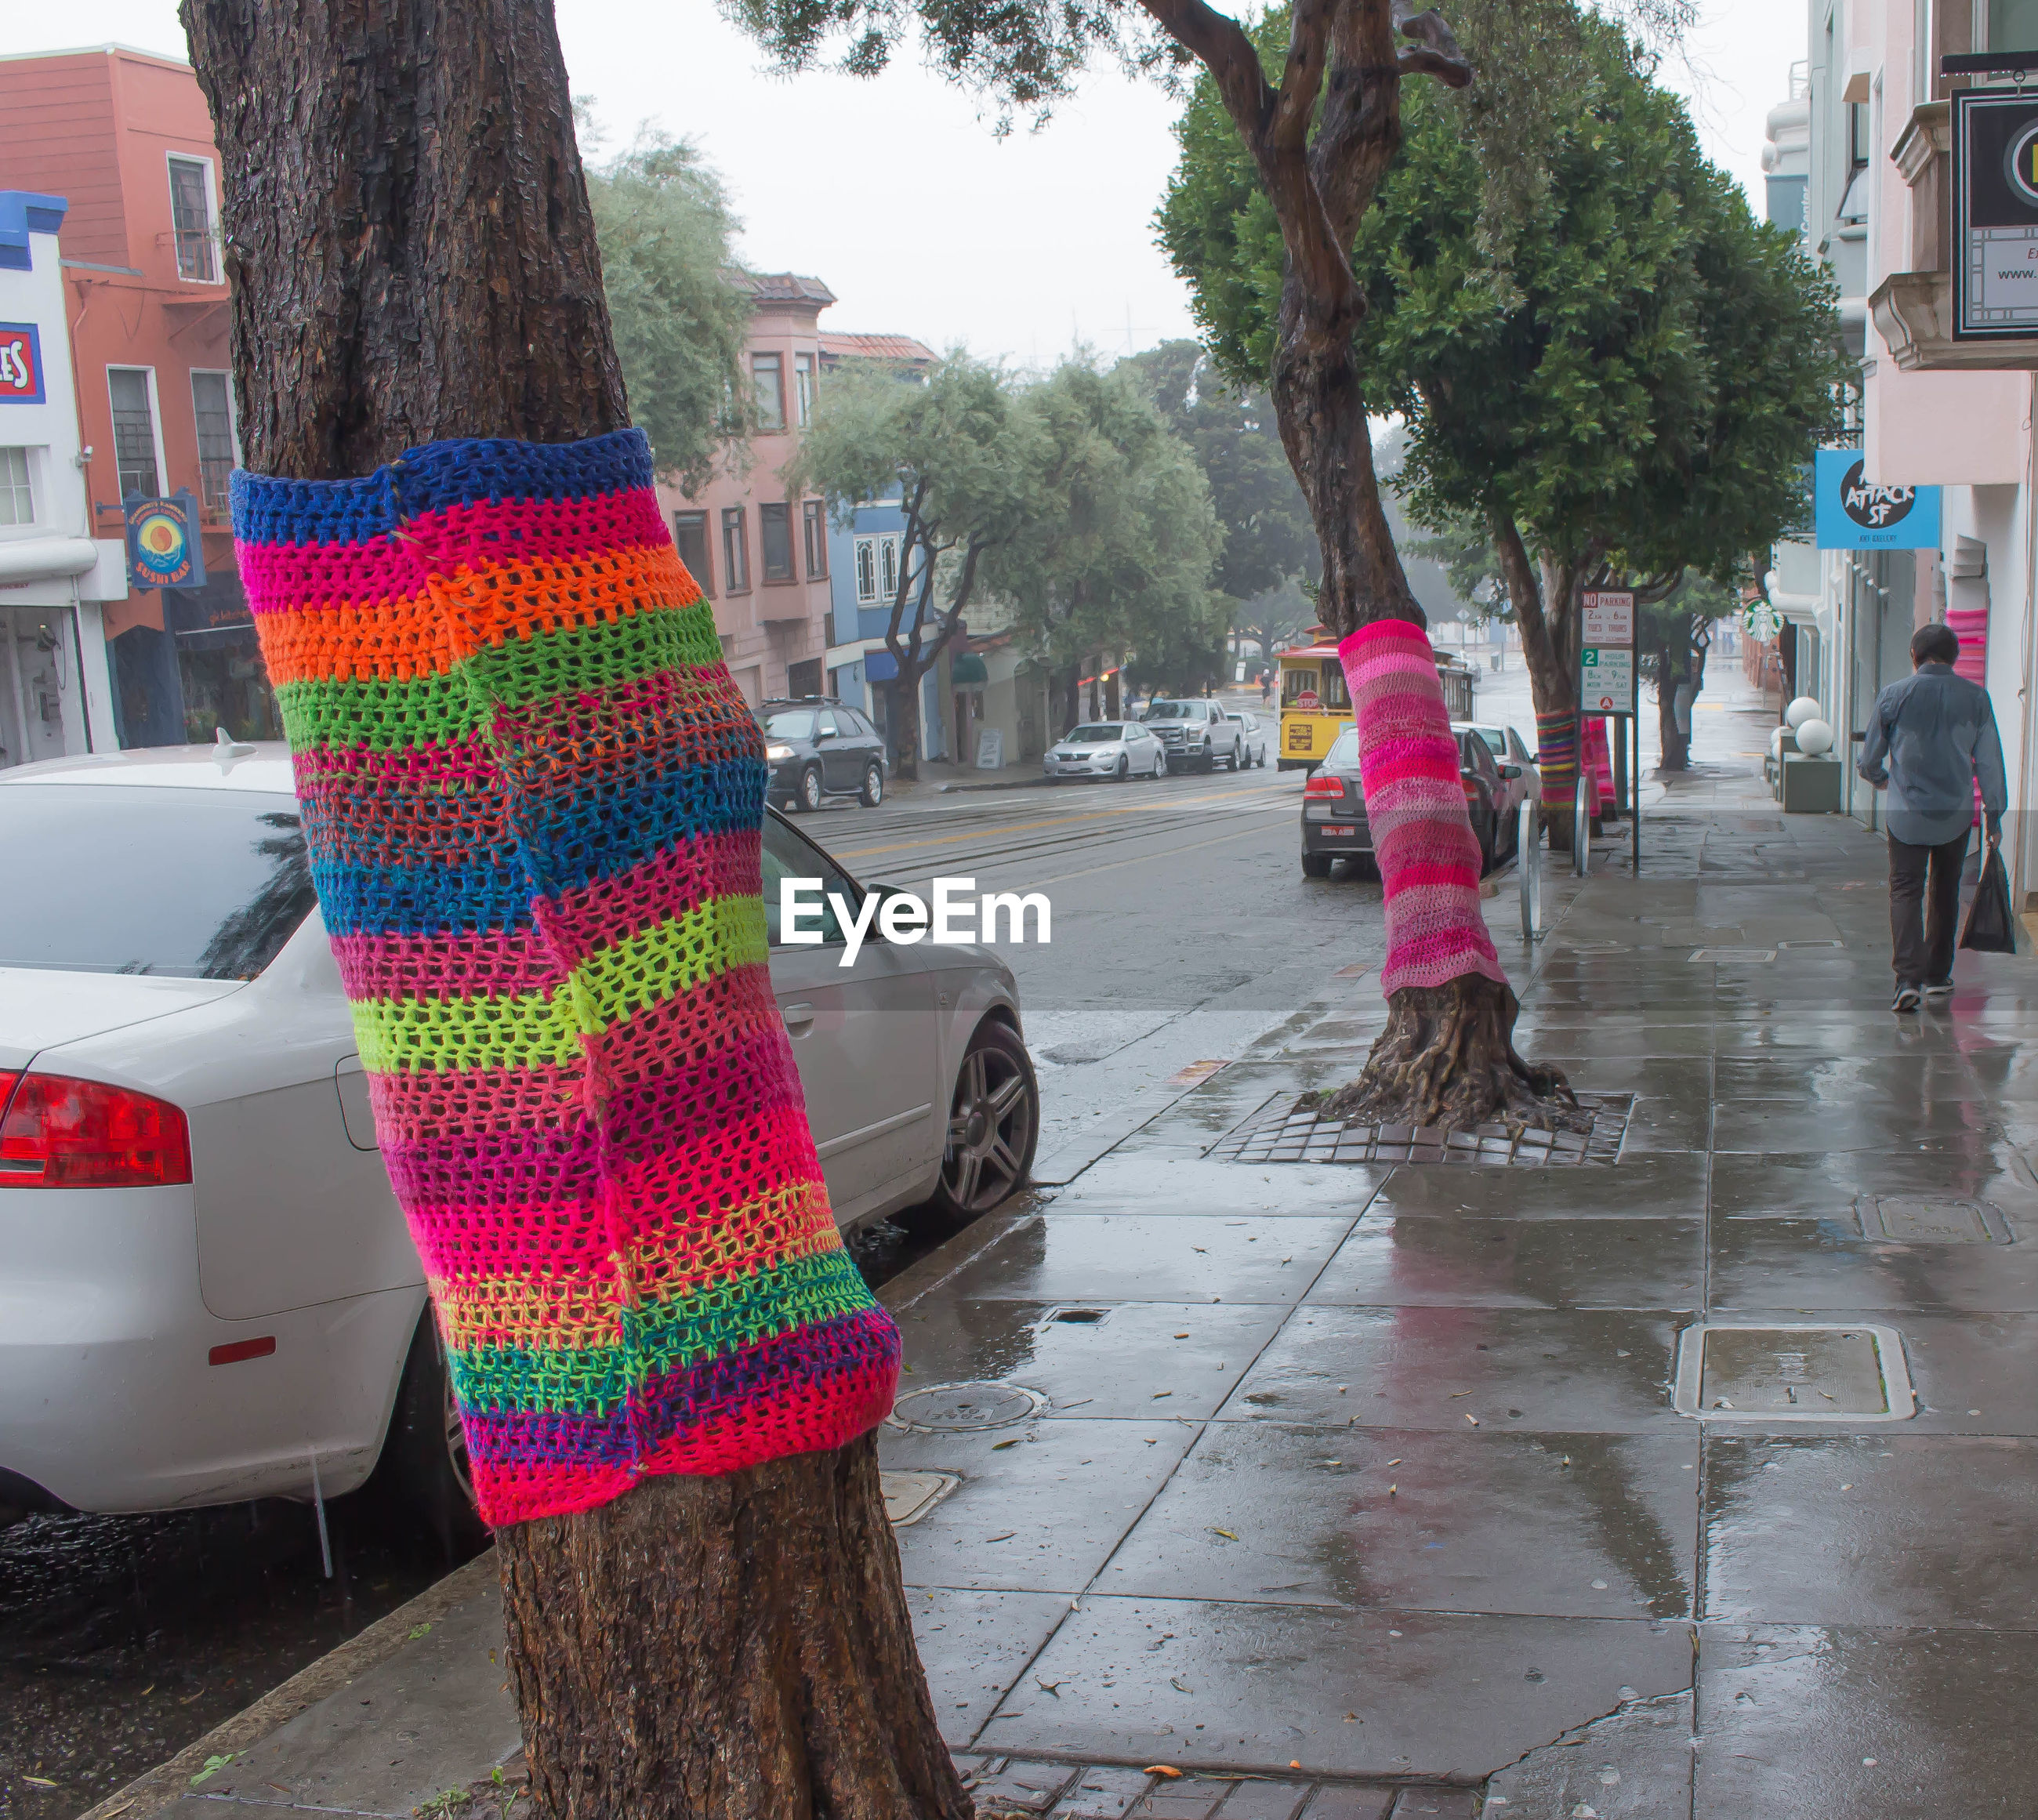 Multi colored fabric decoration on trees at sidewalk in city